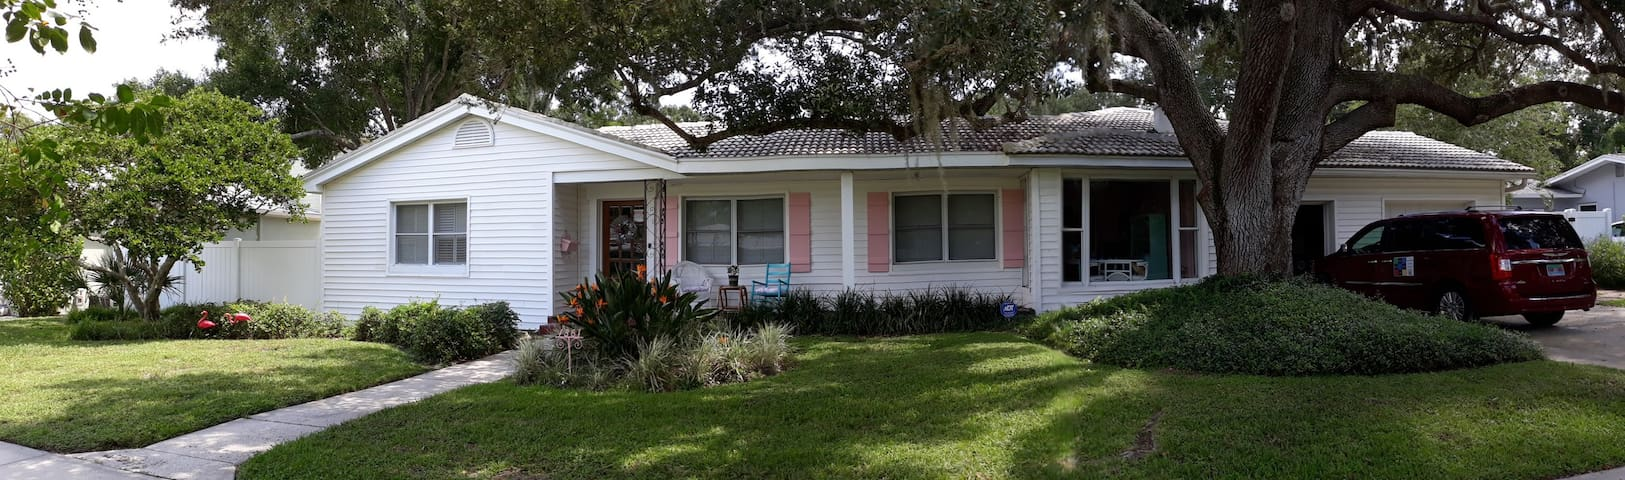 Beautiful home in sought after Belleair, FL